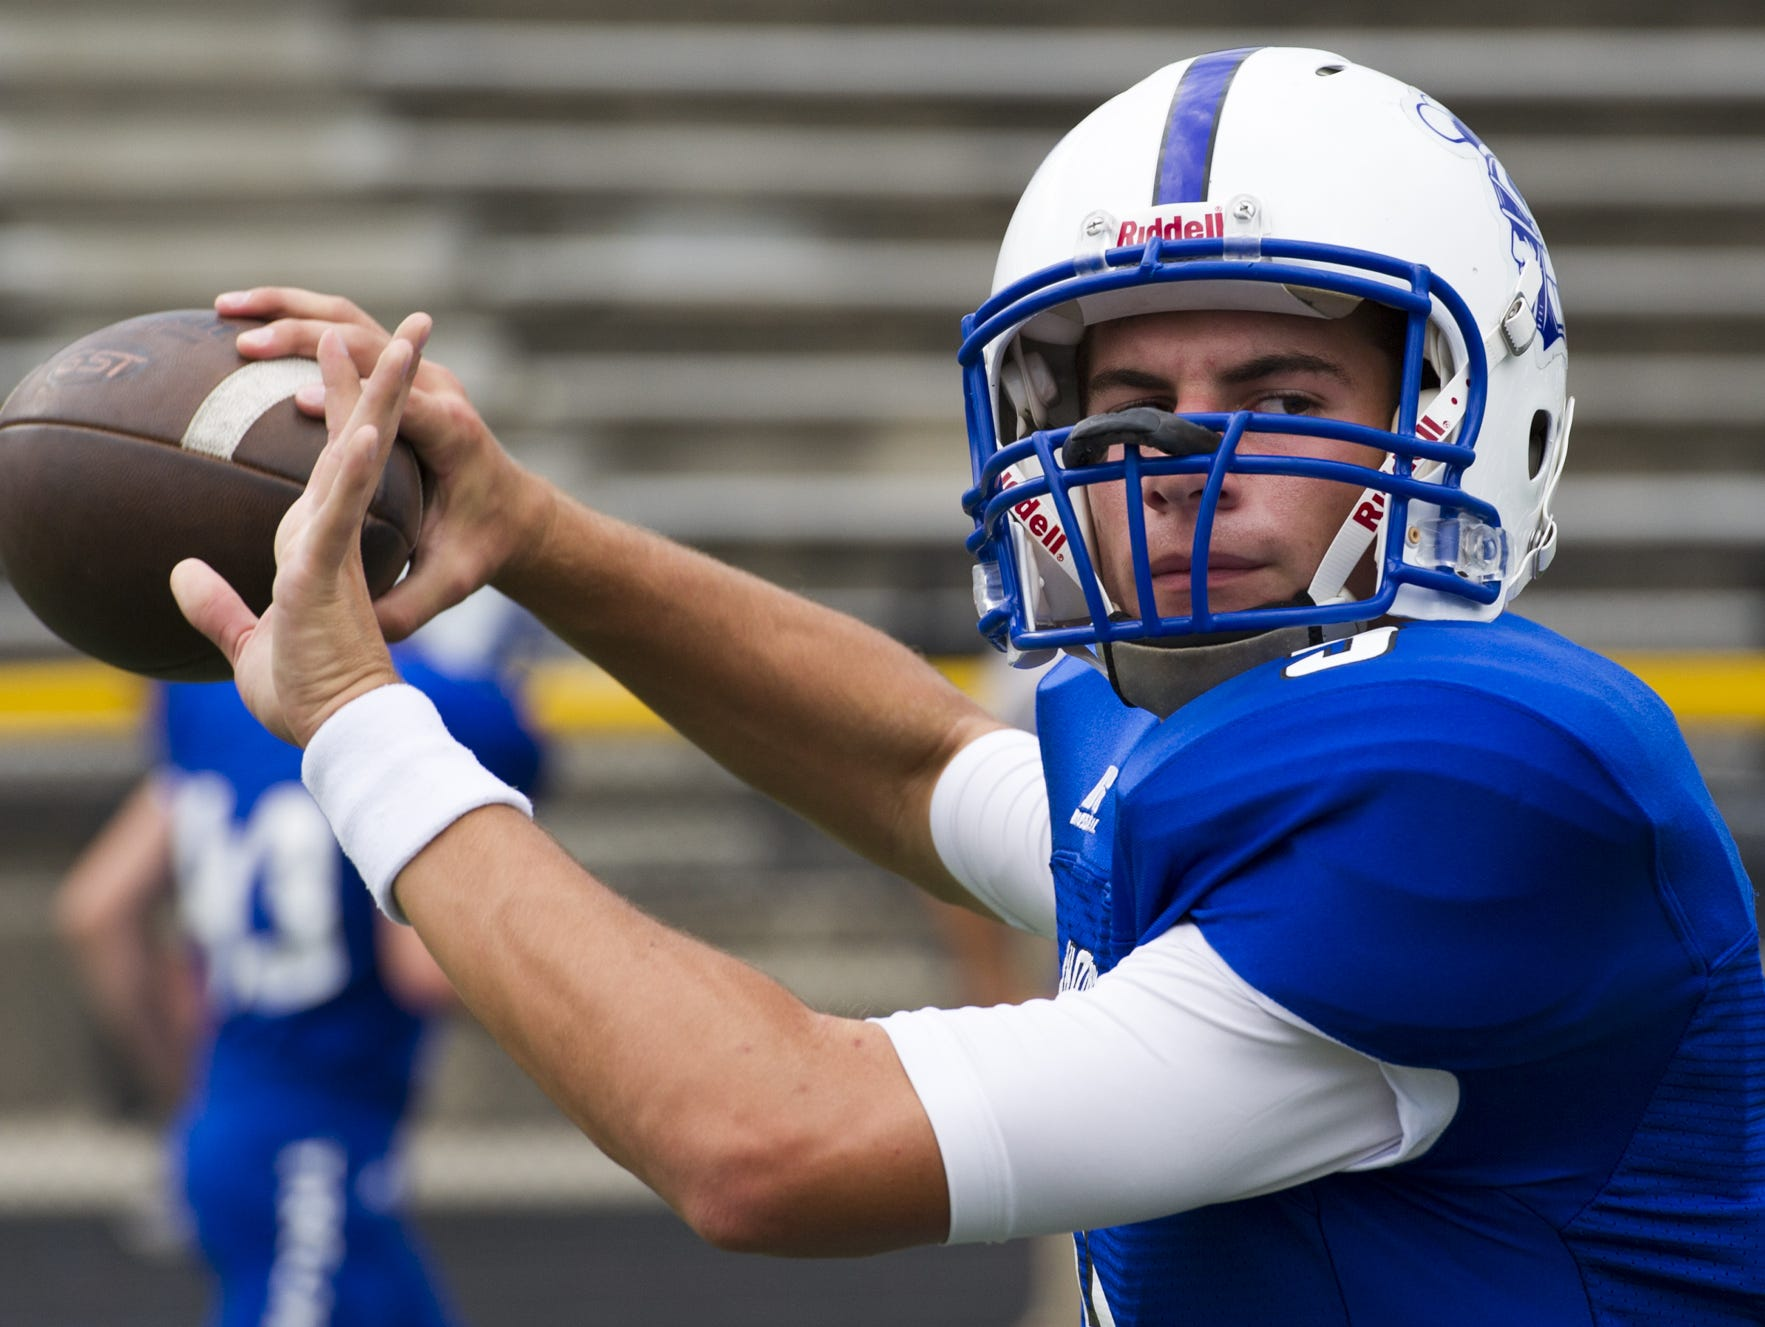 Bishop Chatard High School senior Lewis Dilts (9) warms up on the field during pre-game activities of a high school varsity football game at Lawrence Central High School, Friday, September 4, 2015, in Indianapolis.